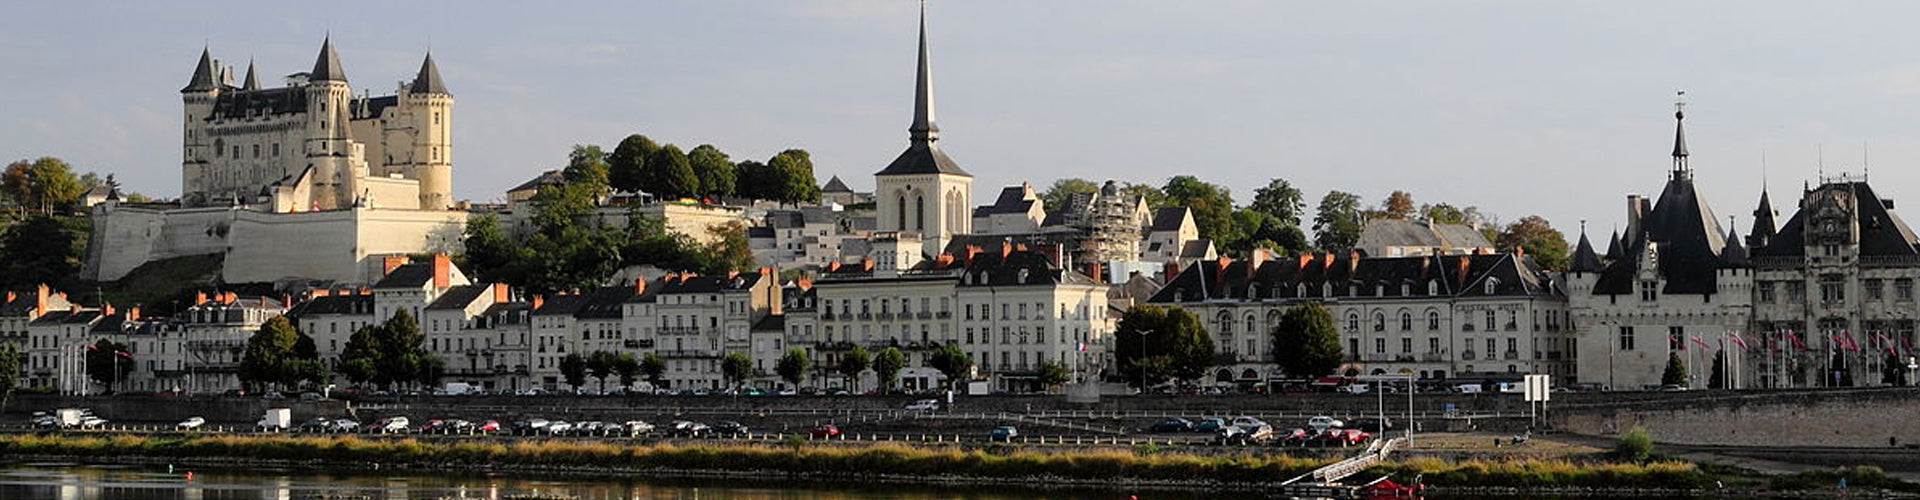 The Historic Town of Saumur in the Loire Valley, France